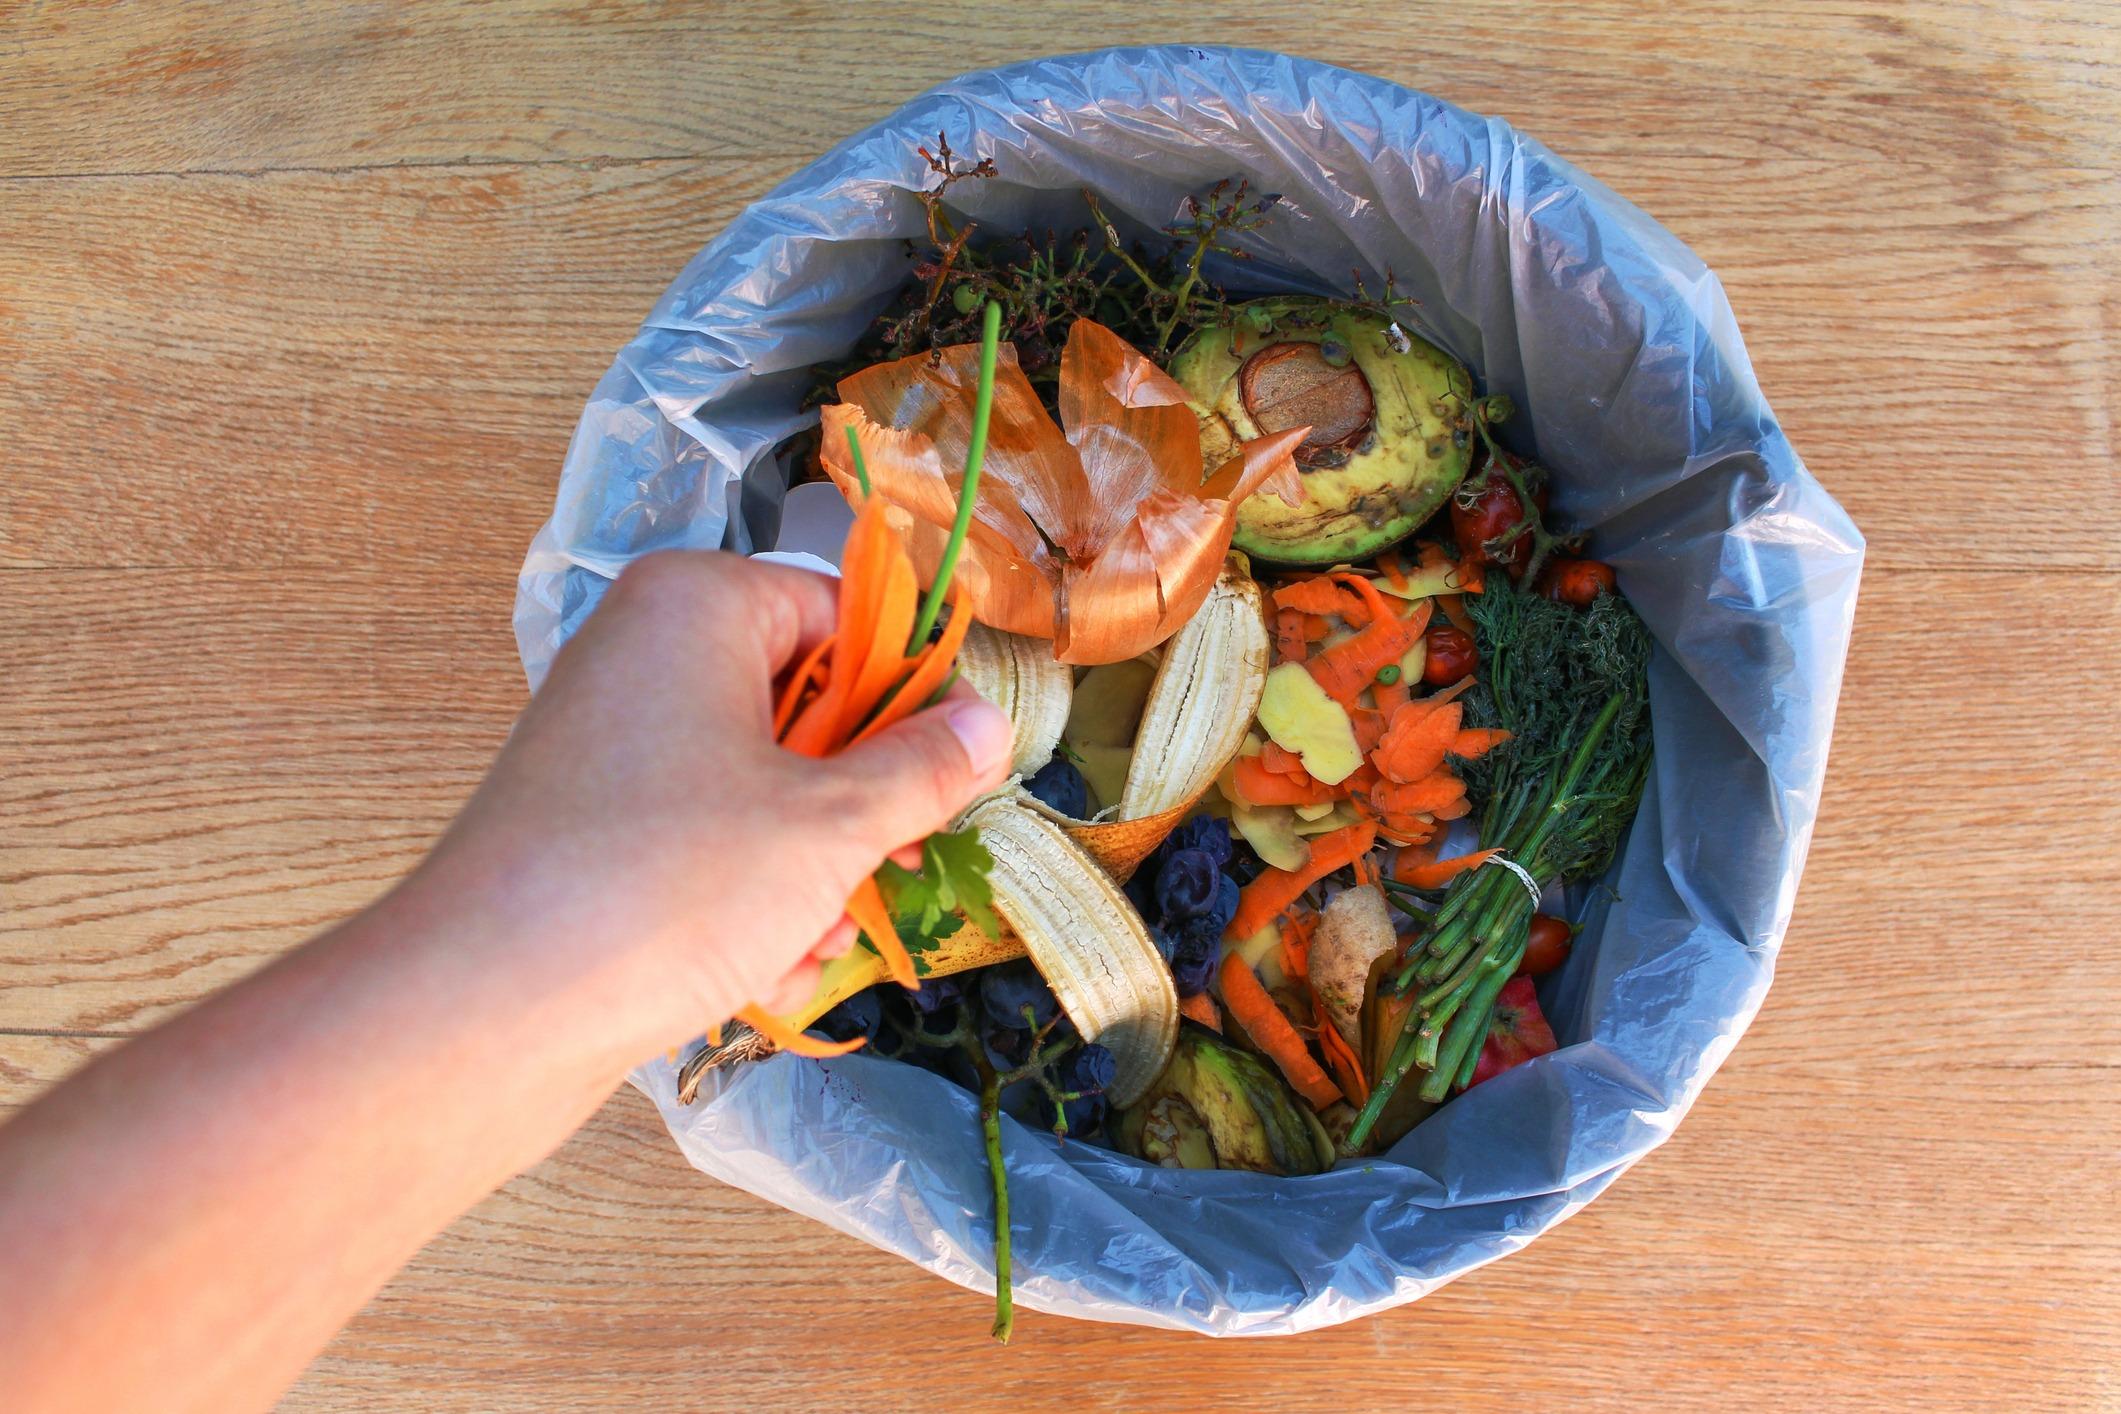 How to manage and process organic food waste